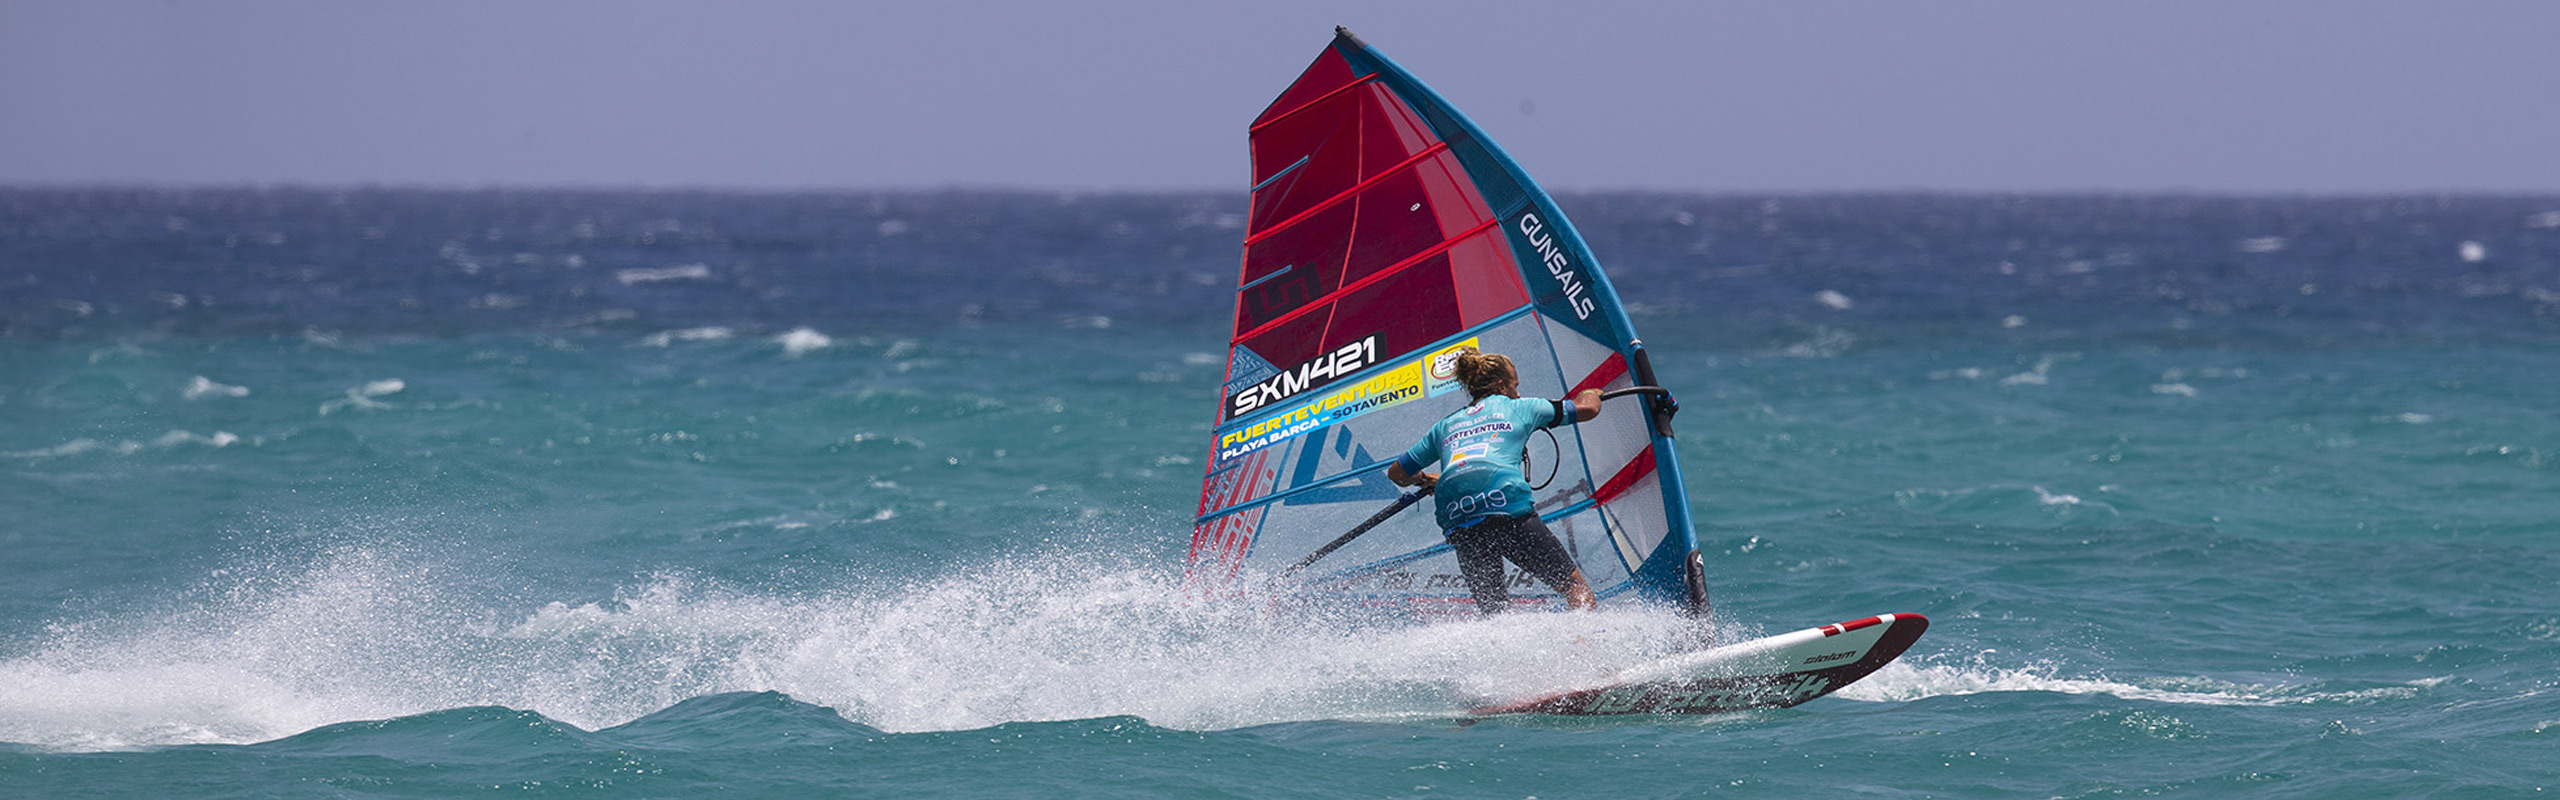 GUNSAILS | PWA World Tour Windsurfing Livestream